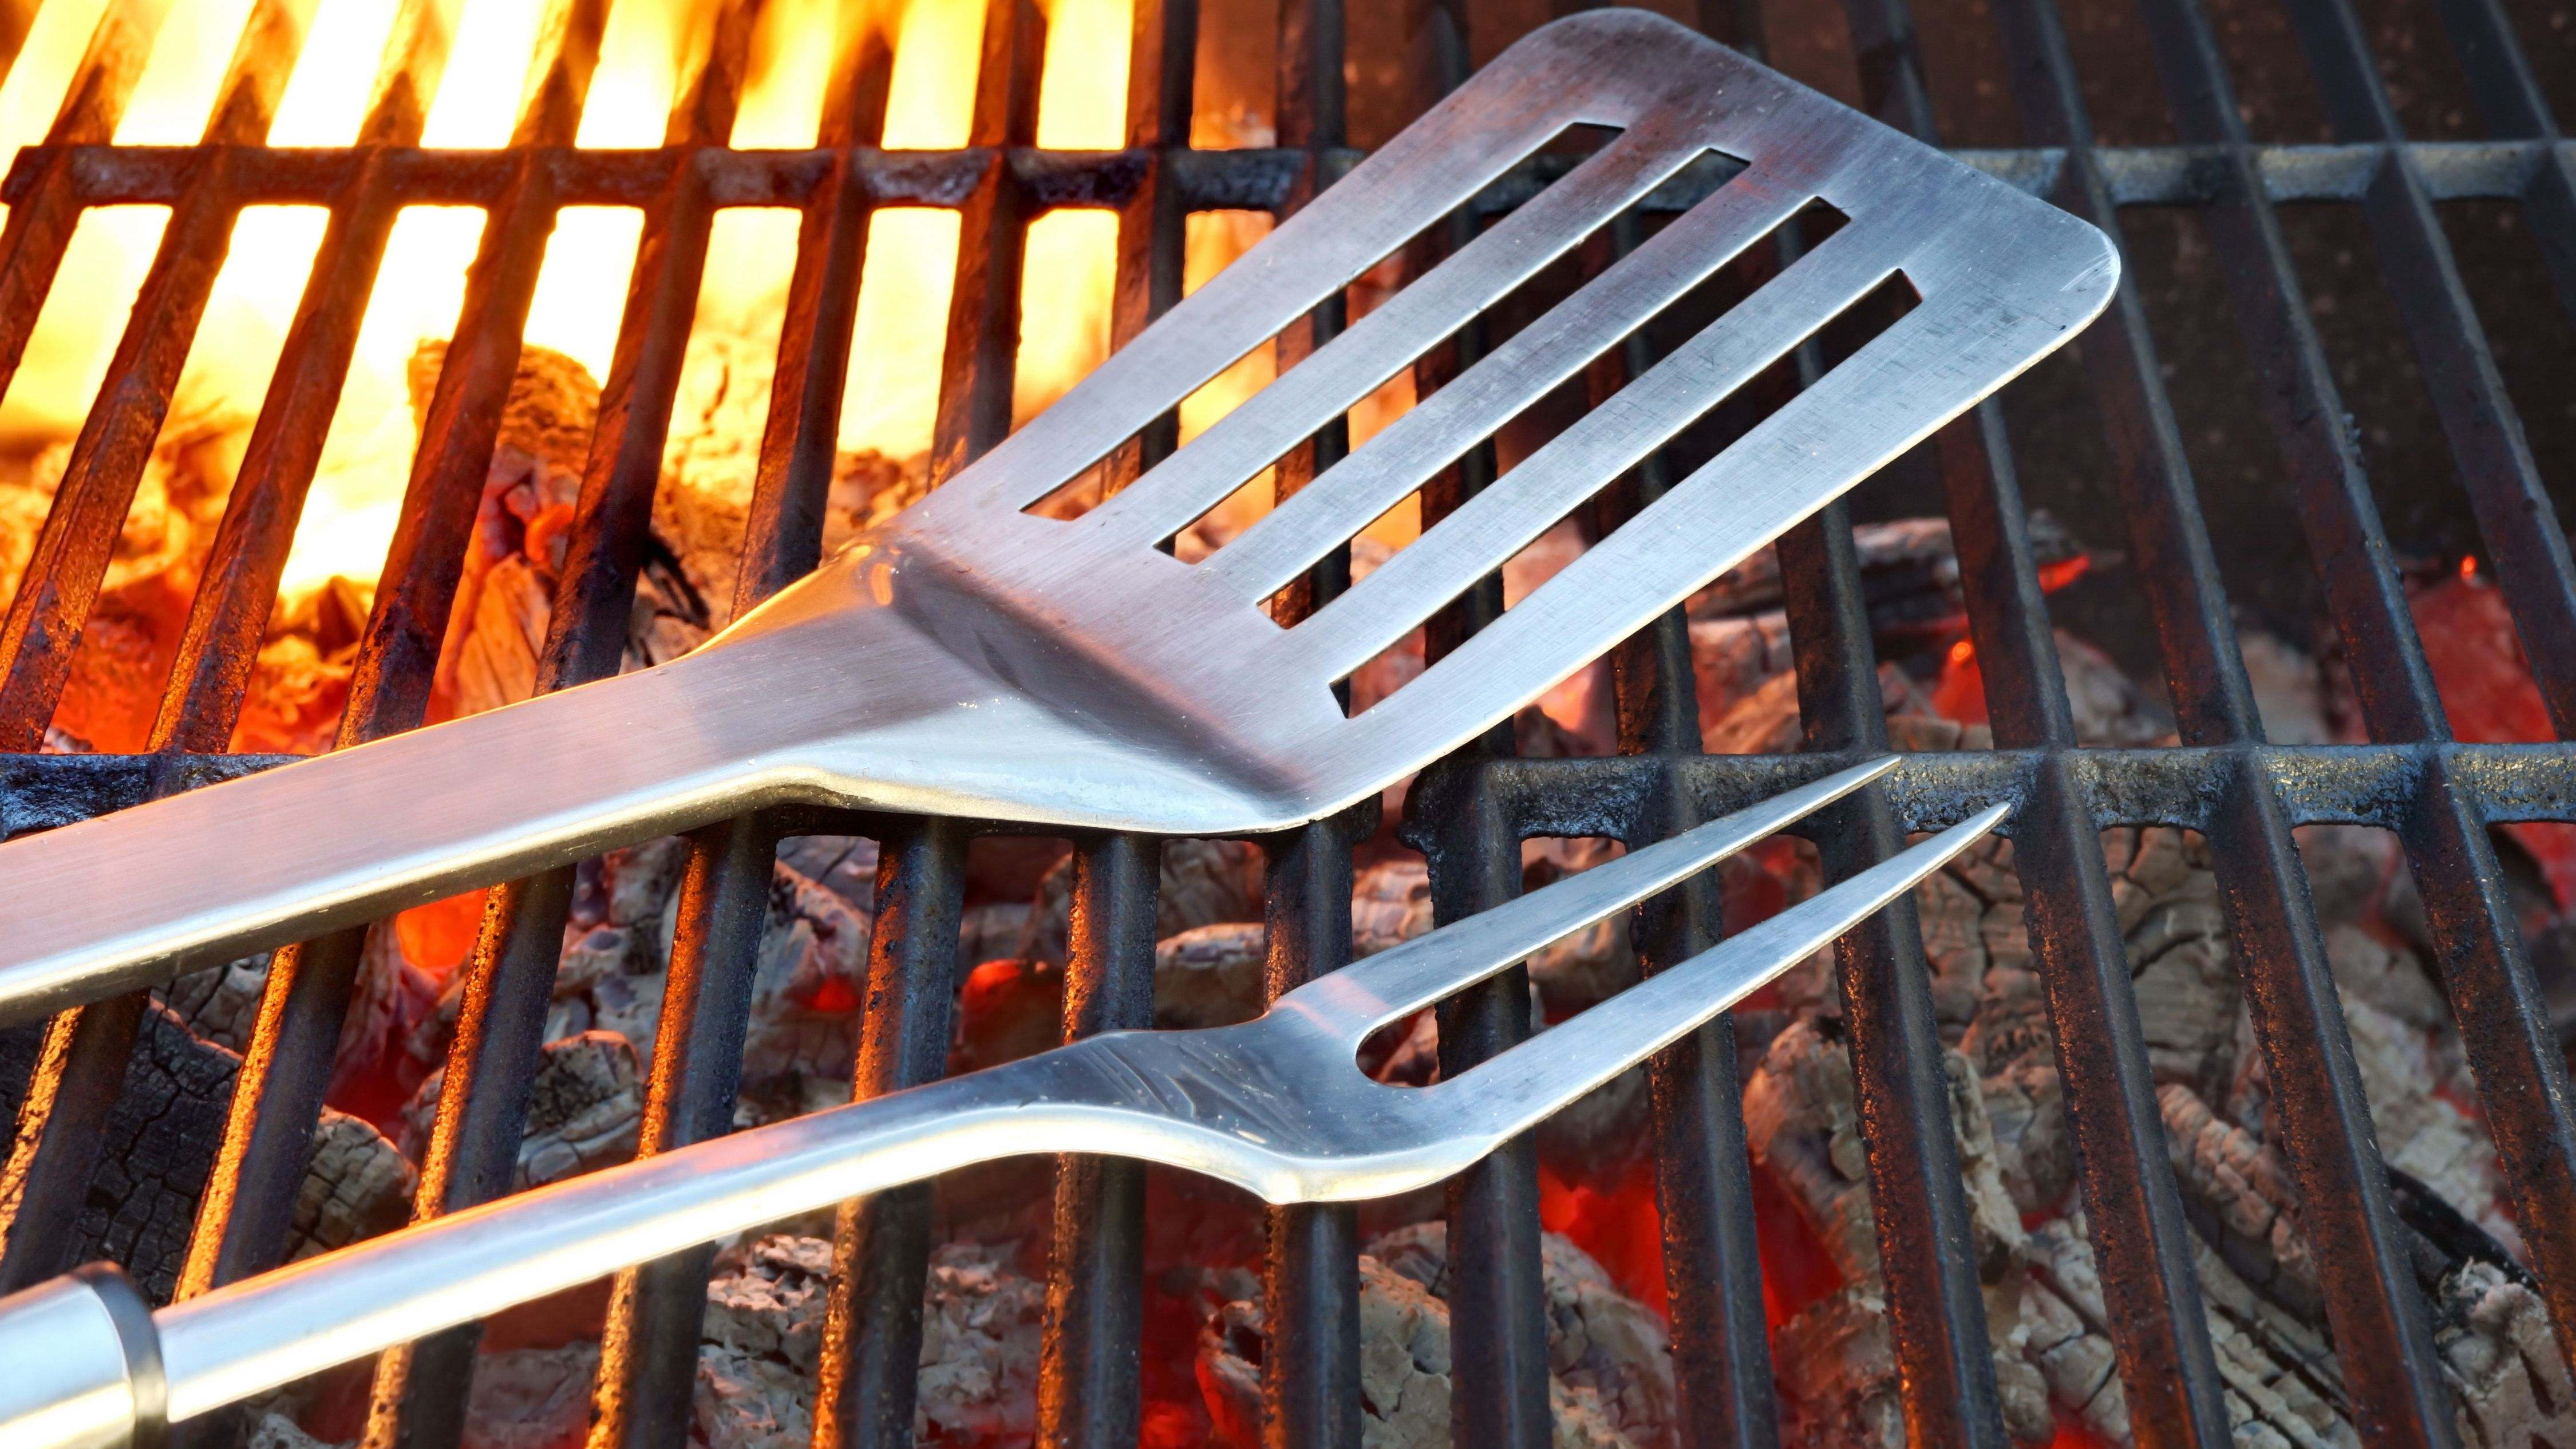 Barbecue accessories buying guide